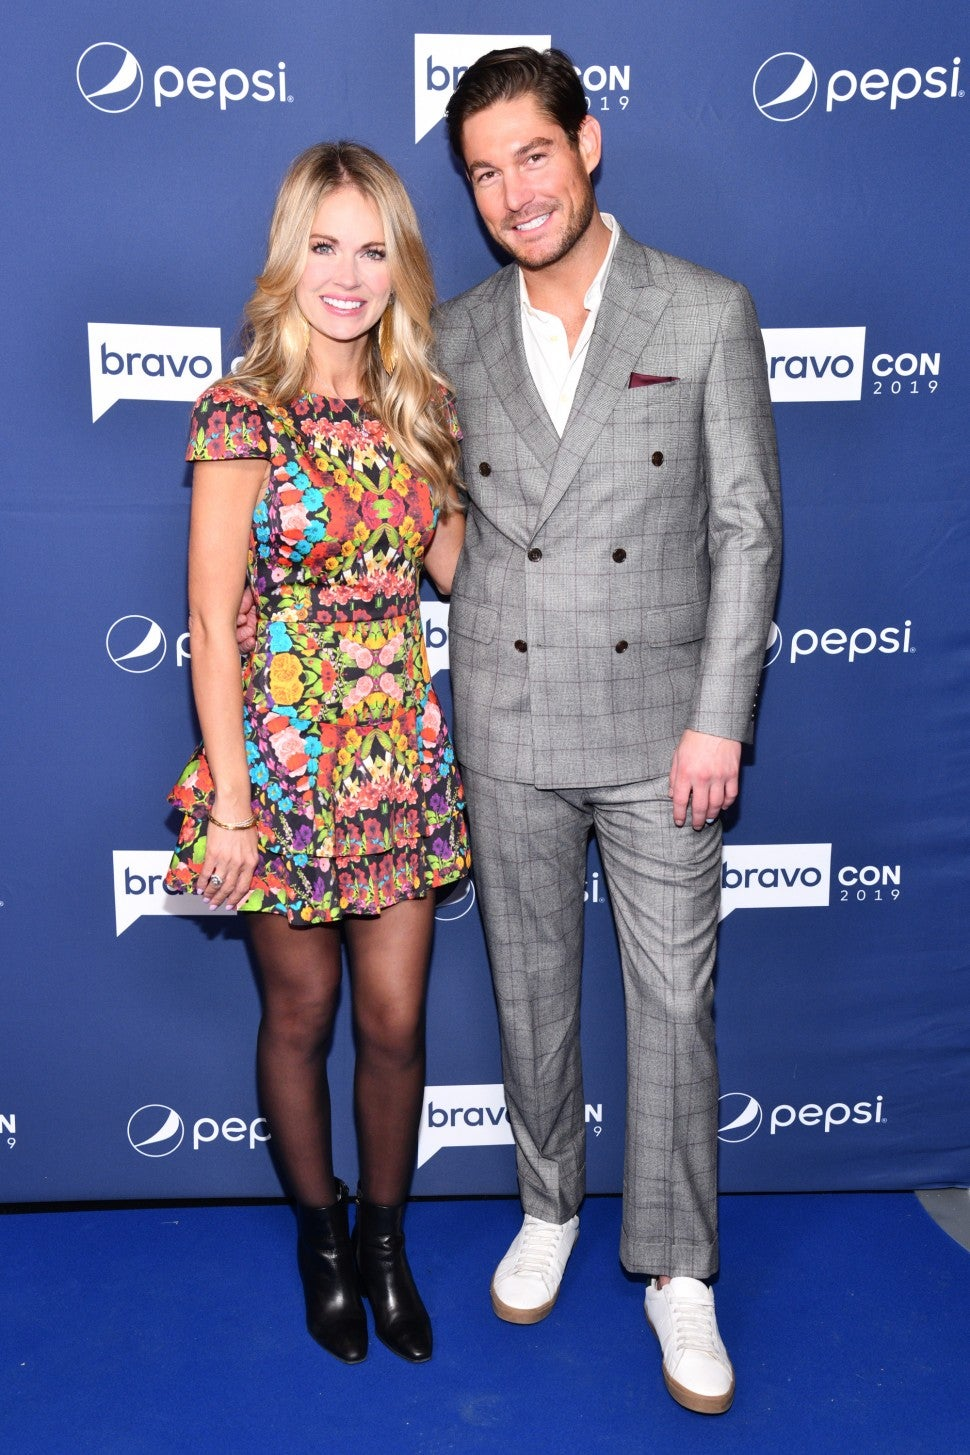 Cameran Eubanks and Craig Conover attend BravoCon 2019.